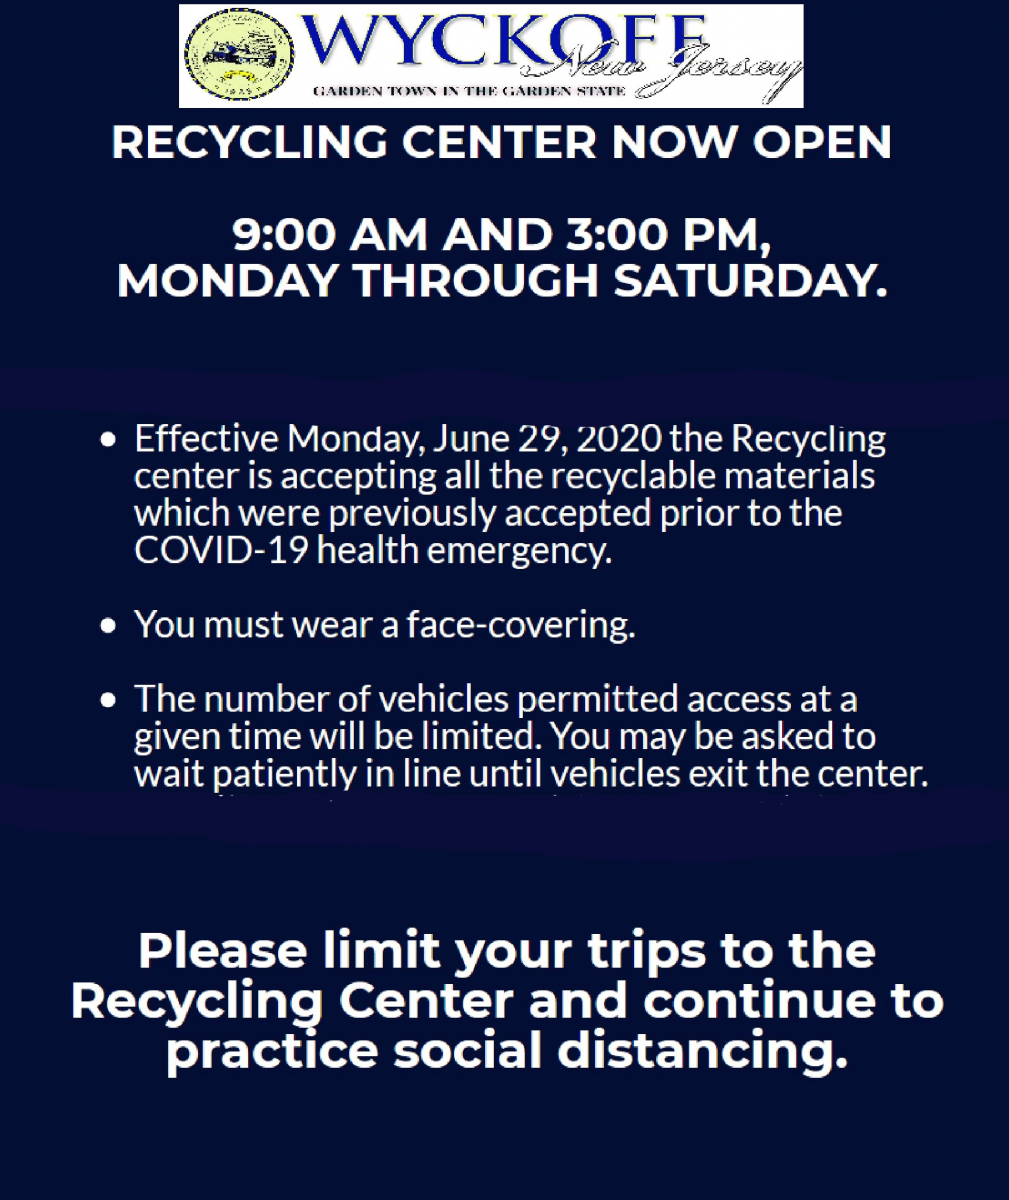 Recycling Center now open 9-3